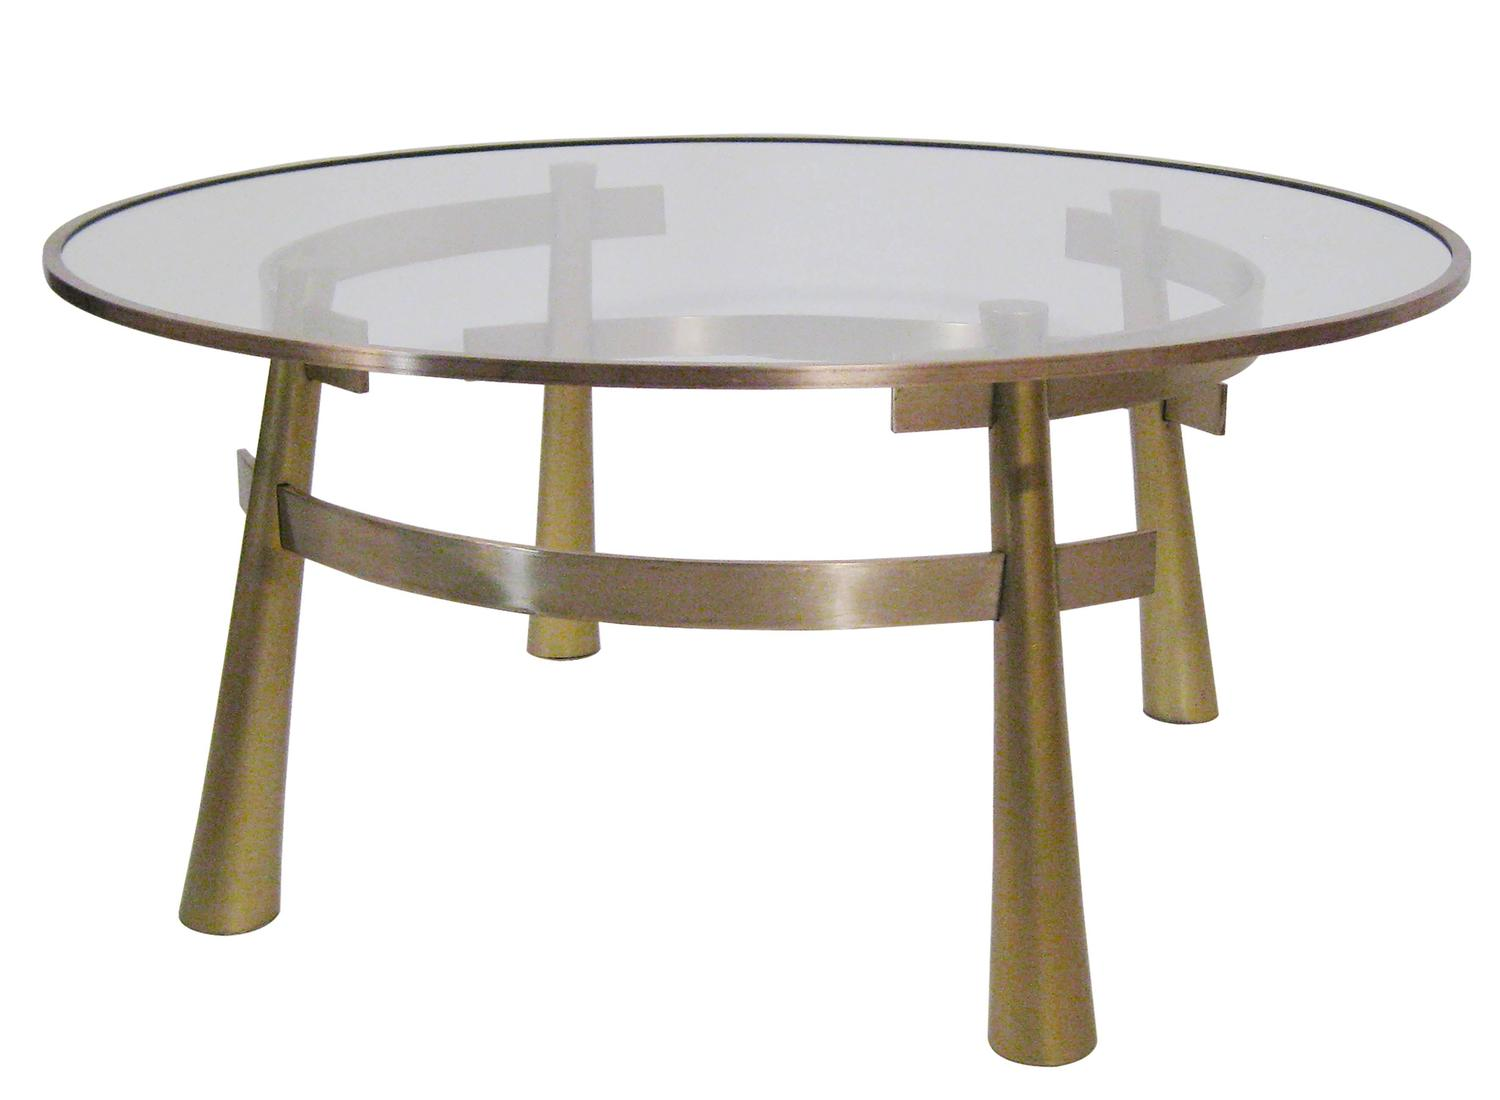 Original Mexican Mid Century Modern Coffee Table For Sale At 1stdibs